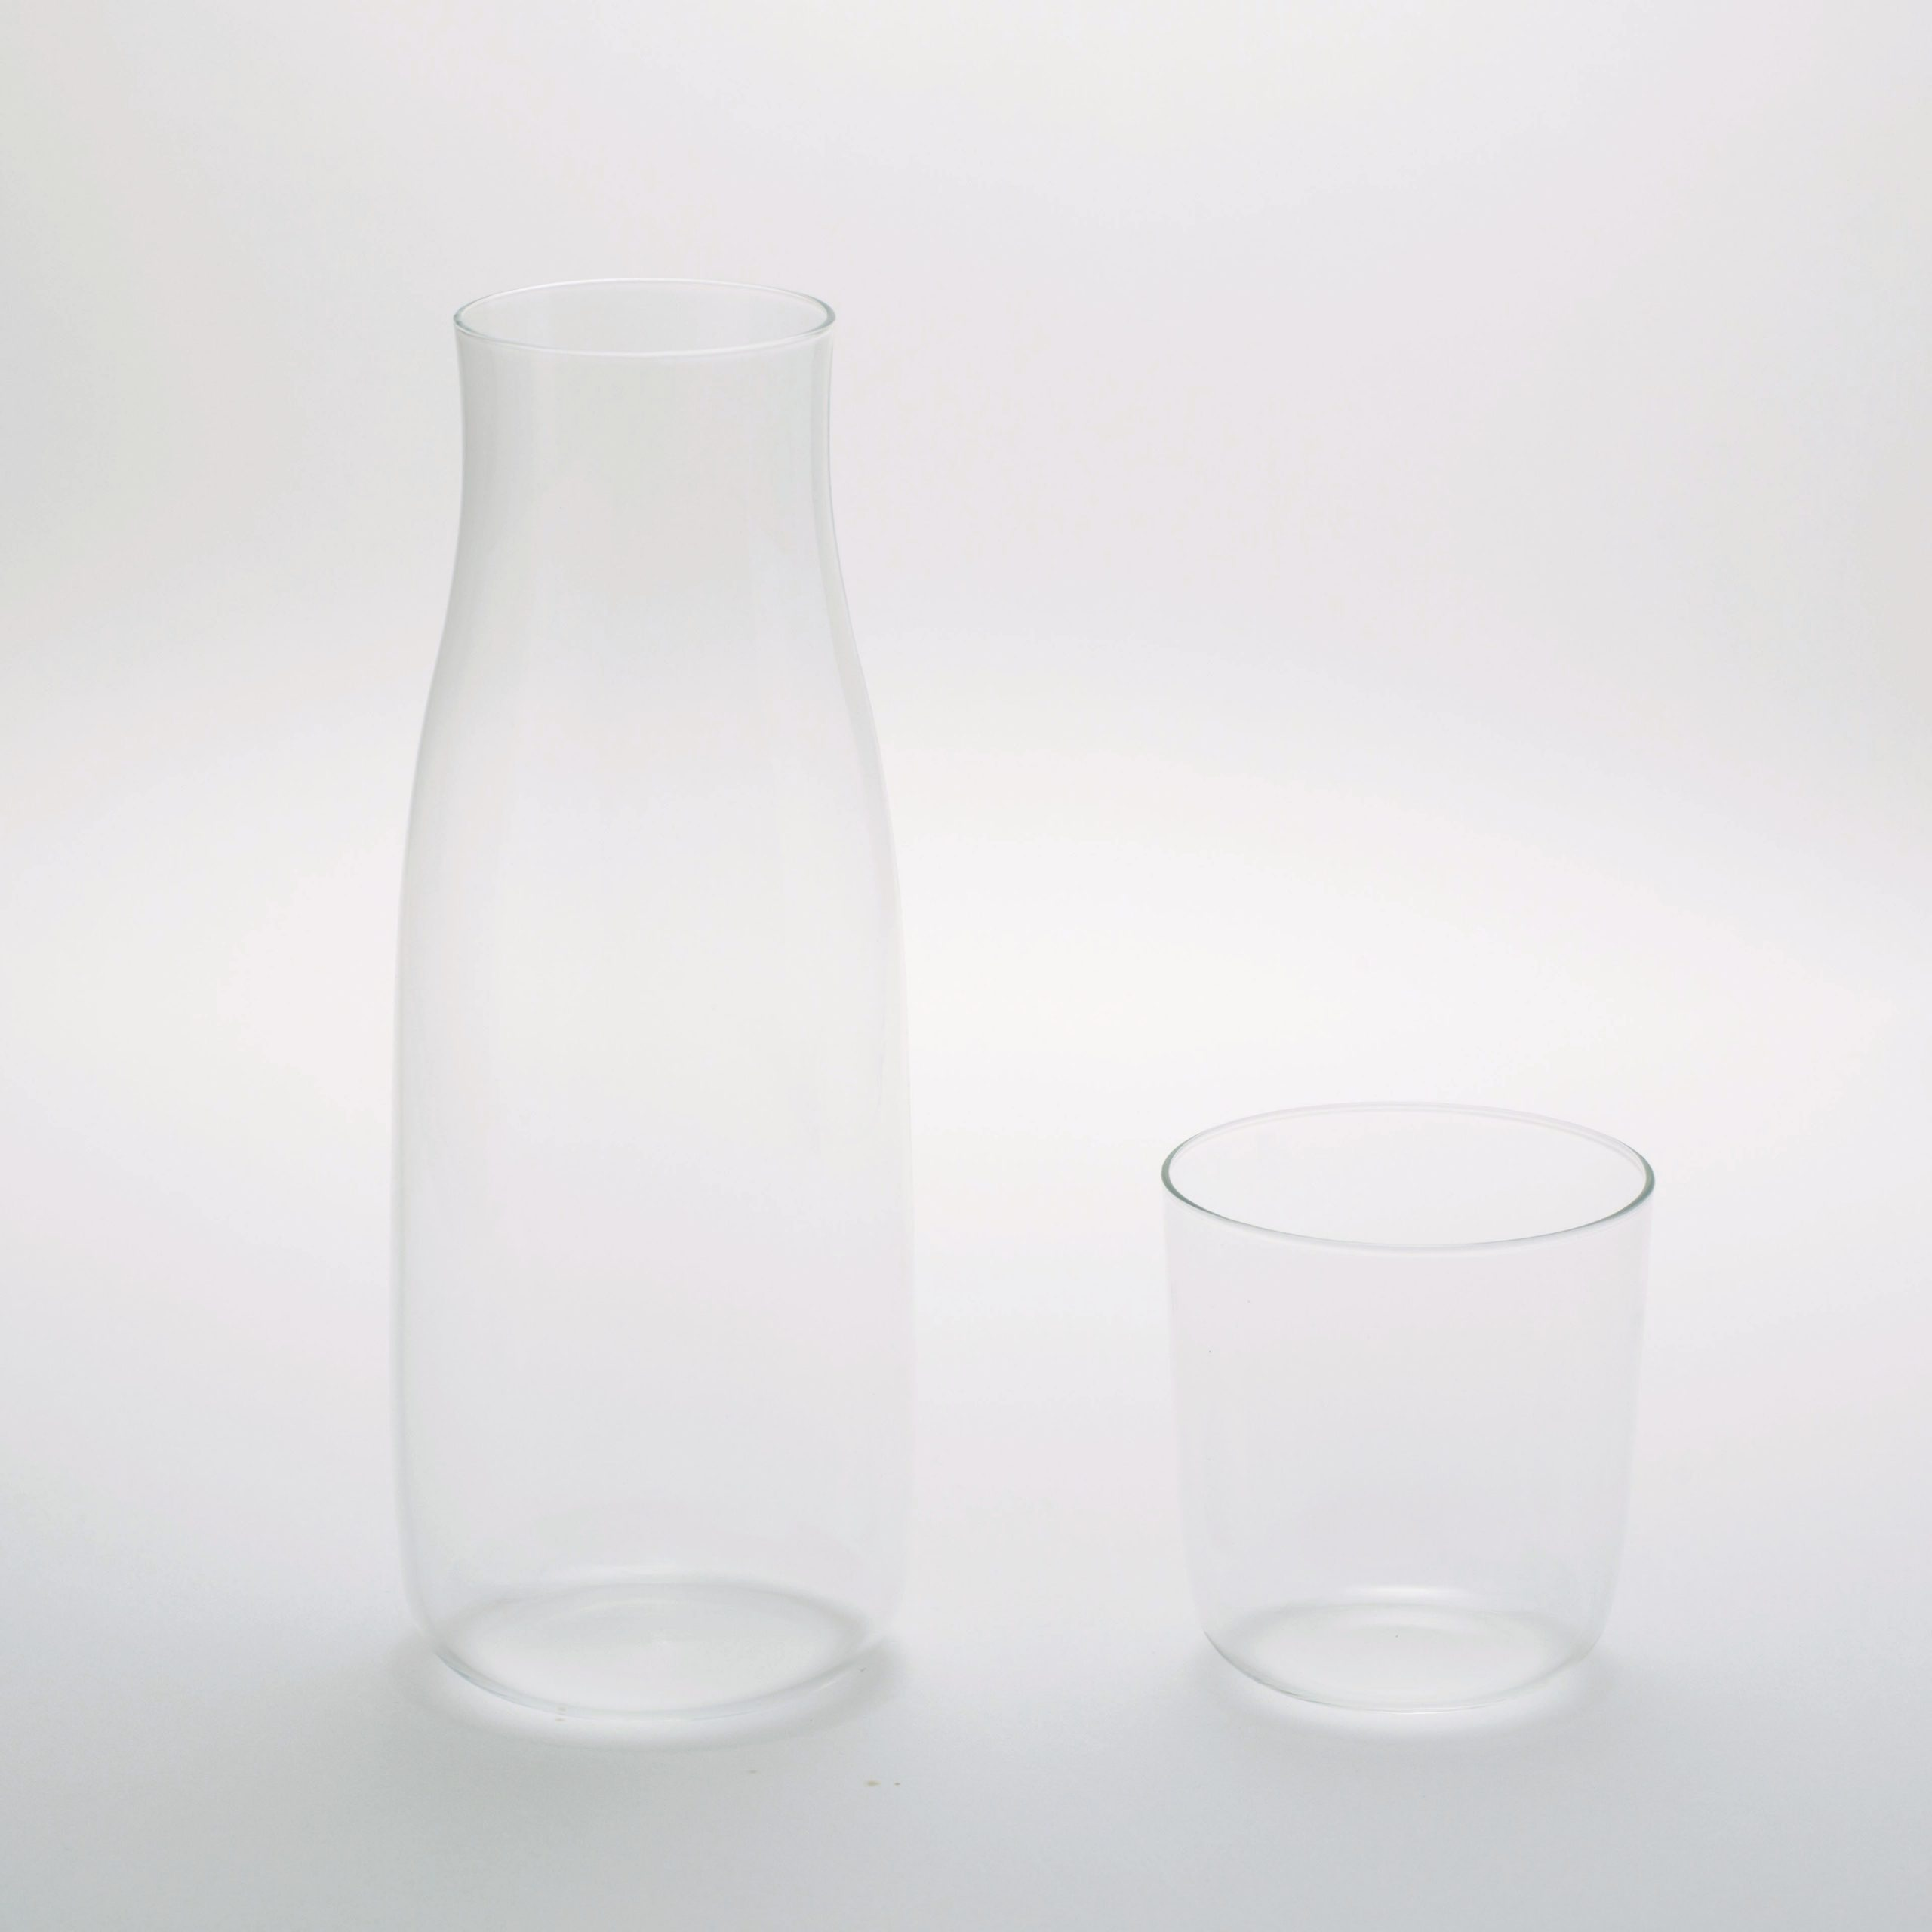 Heat-Resistant Water Pitcher and Cup Set / Cup Parts